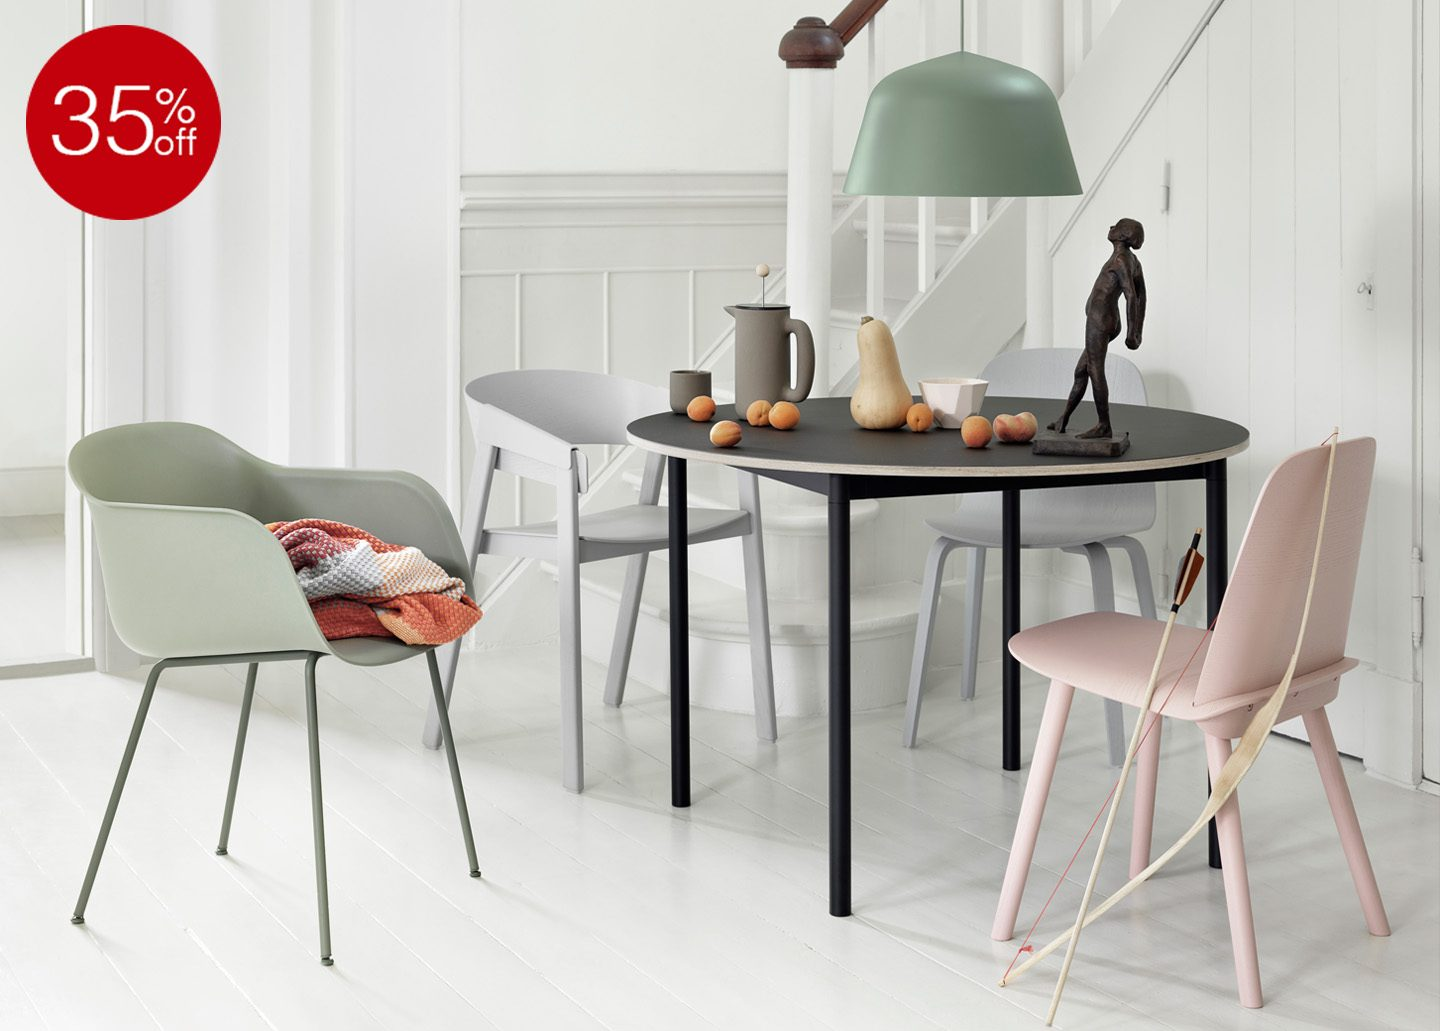 35% OFF BASE TABLE EX-DISPLAY BY MUUTO